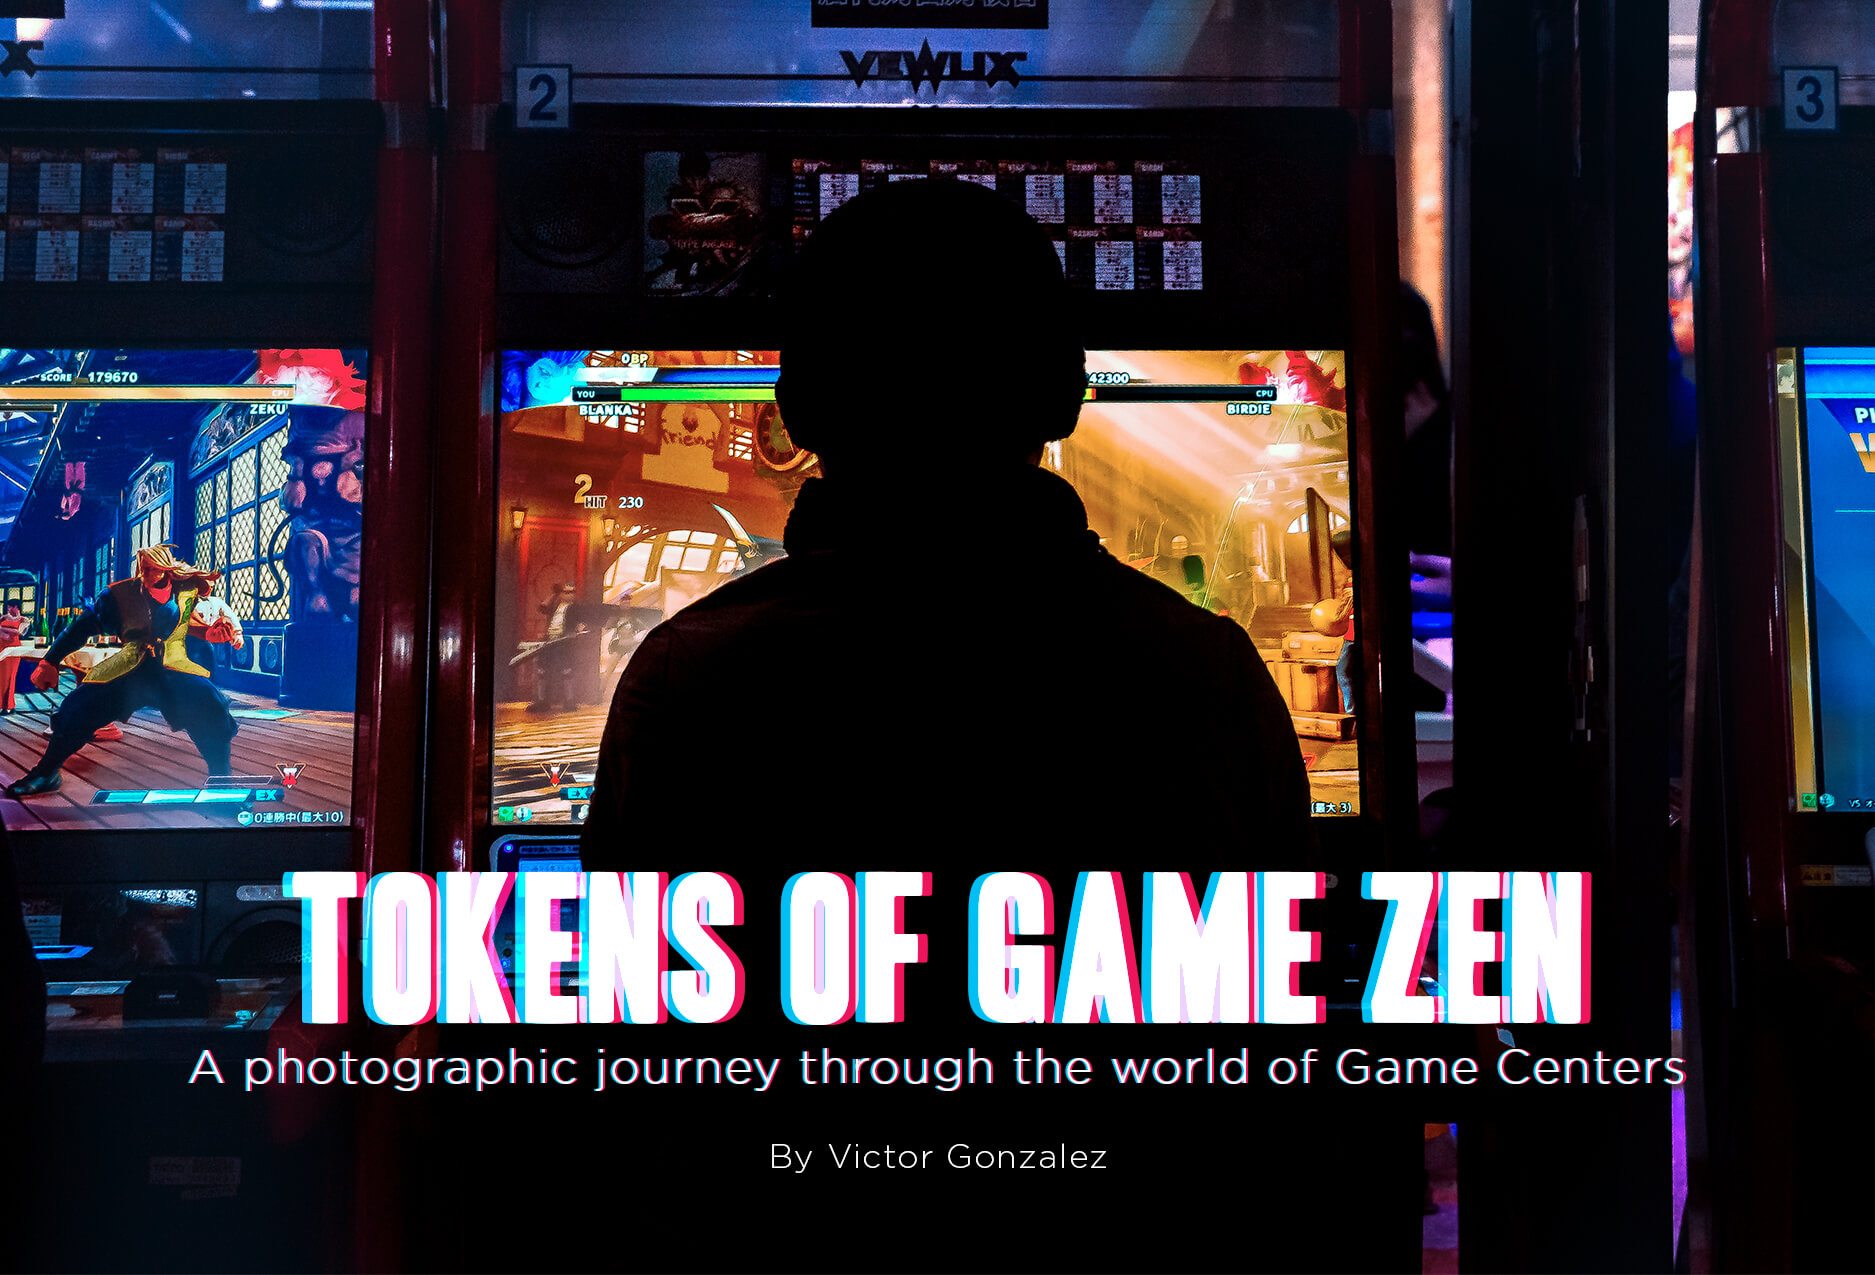 Victor Gonzalez によるプロジェクト「Frame of Travel」の写真展『TOKENS OF GAME ZEN』を開催します。